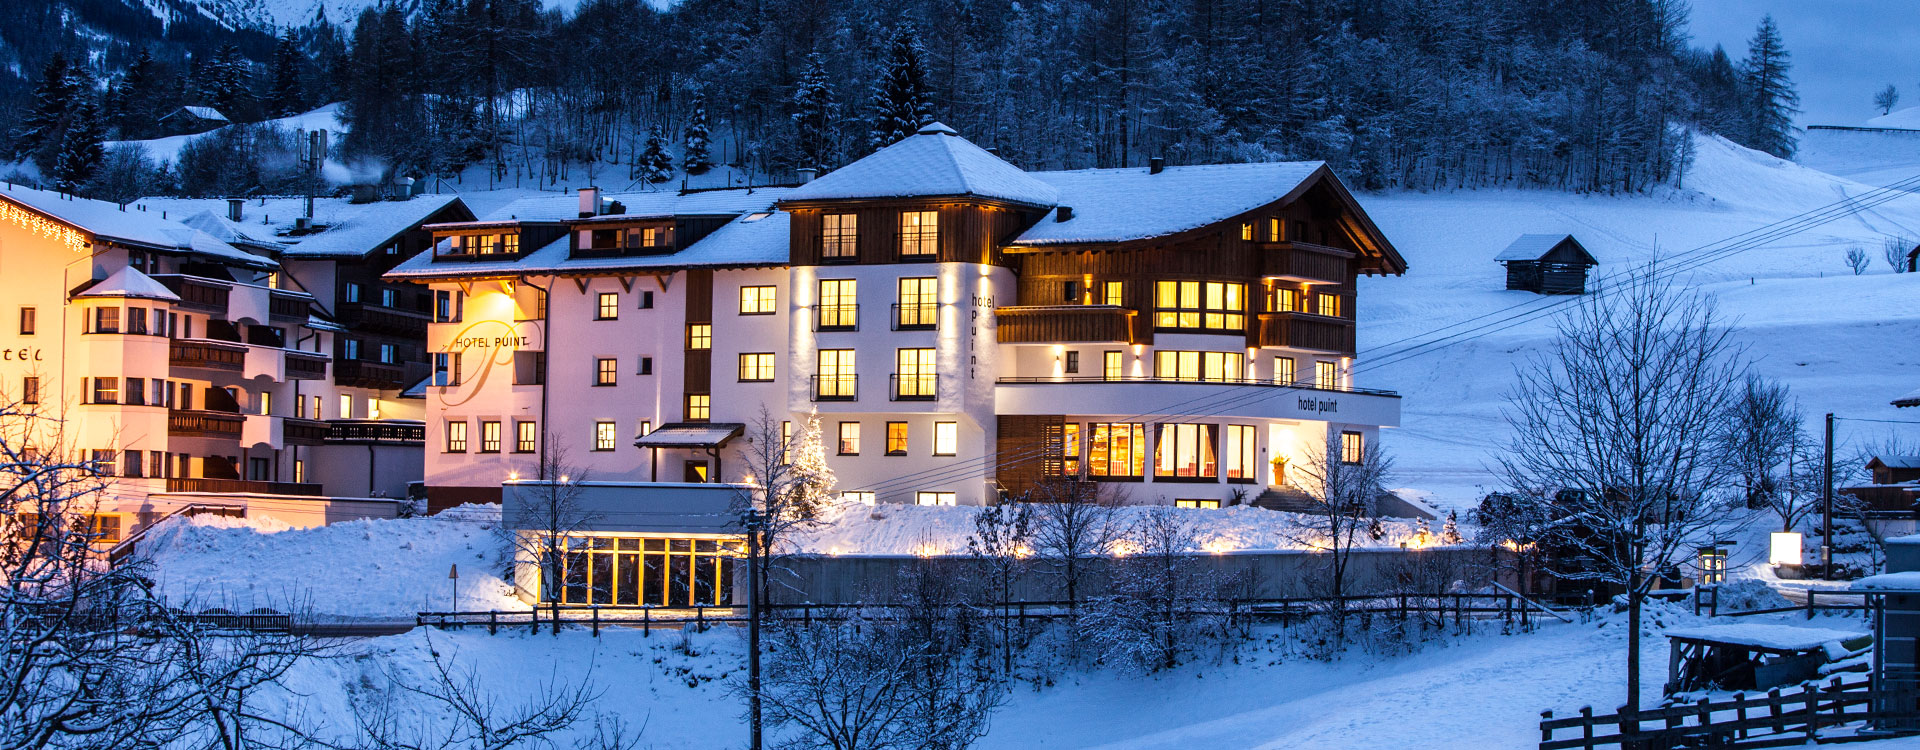 hotel-puint-hotel-winter-01